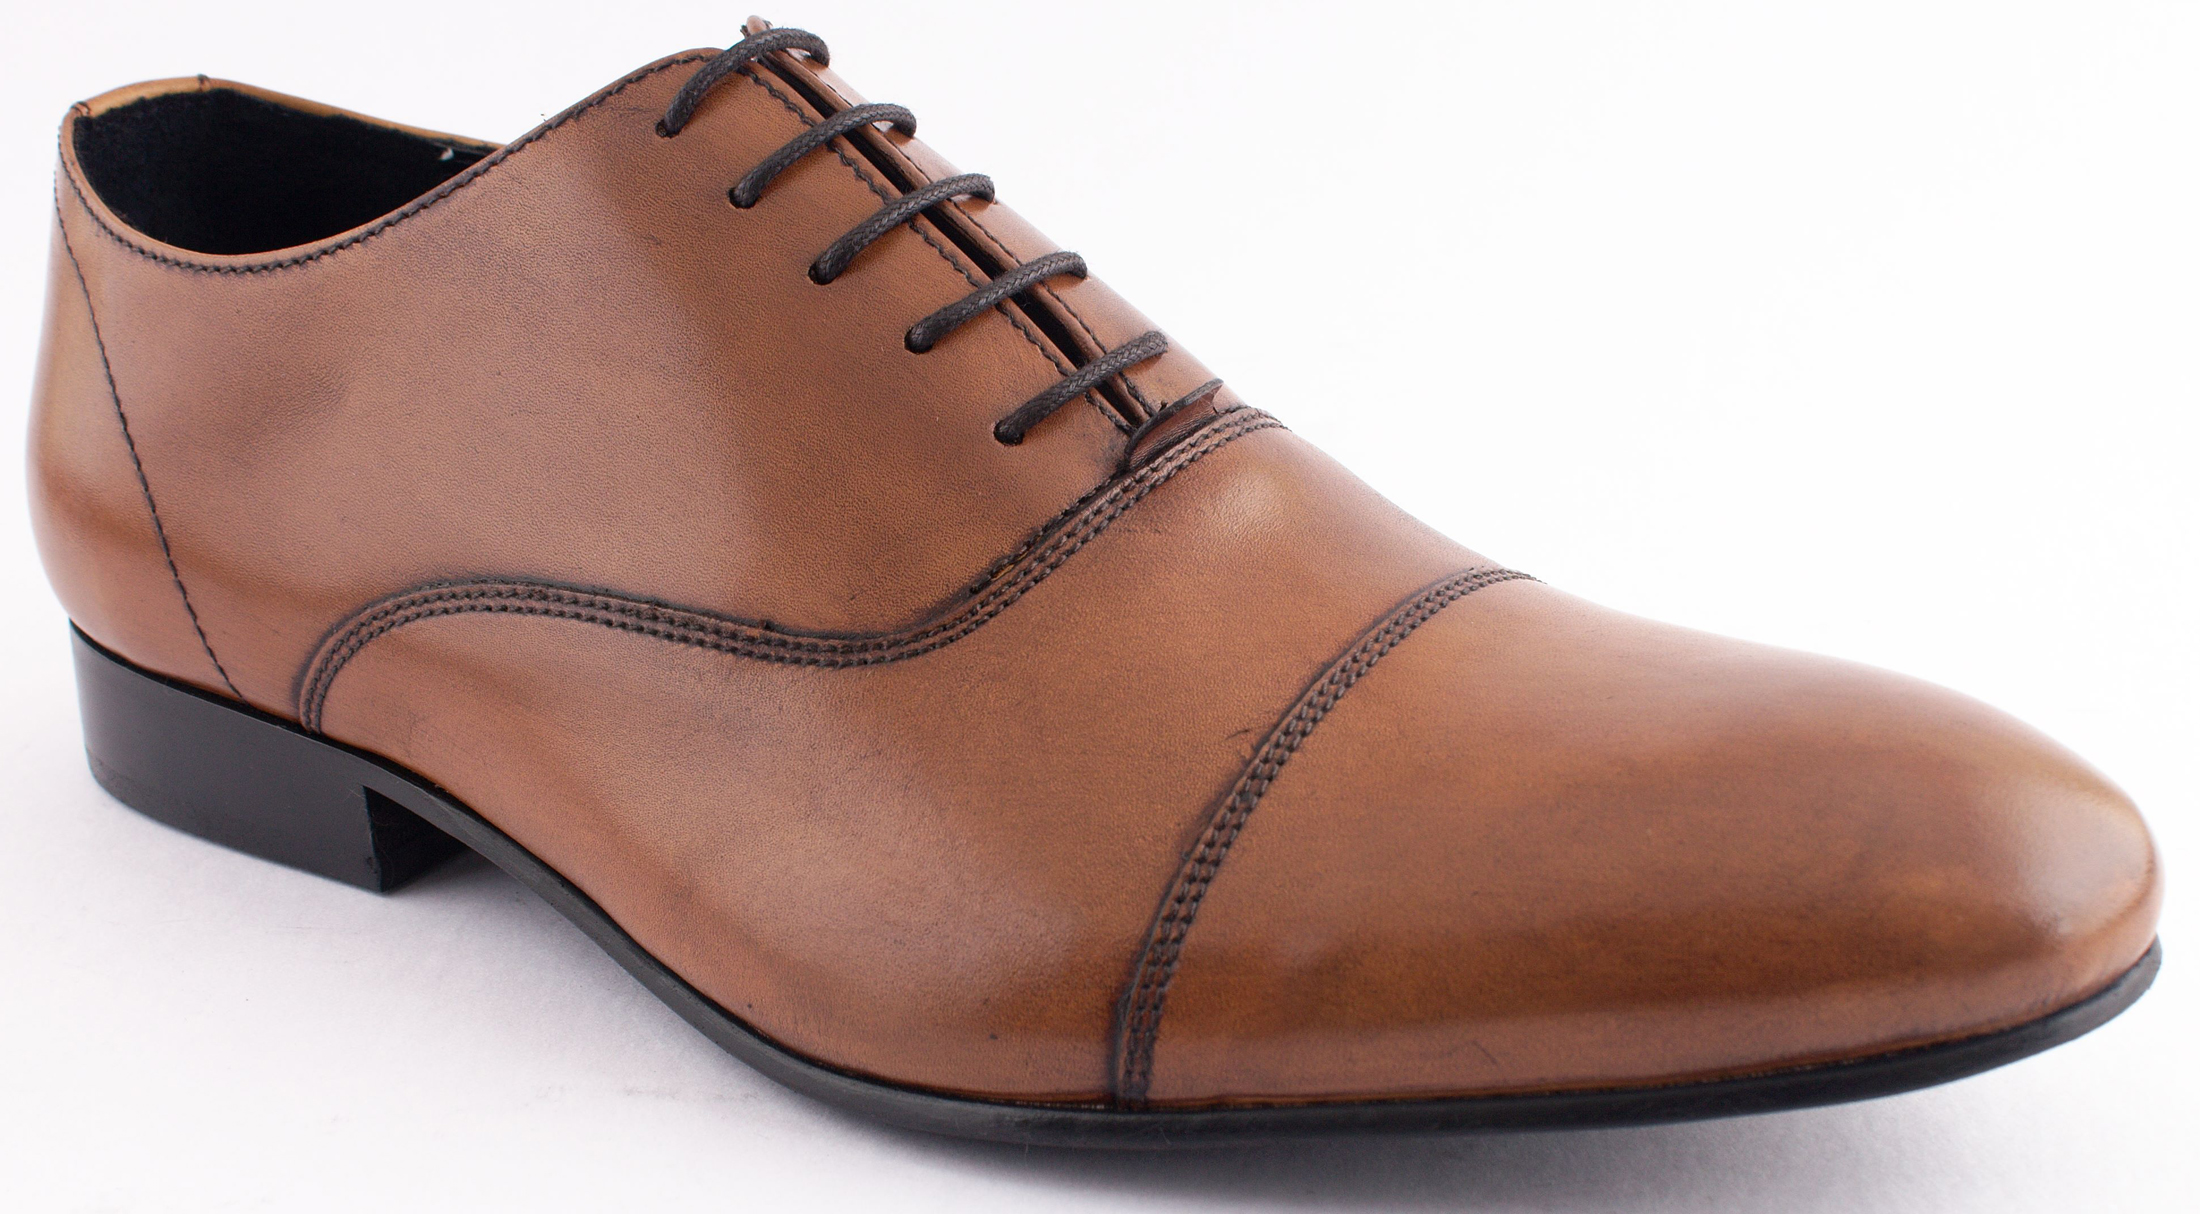 Fellini Tan Formal Shoes at Rs.2449